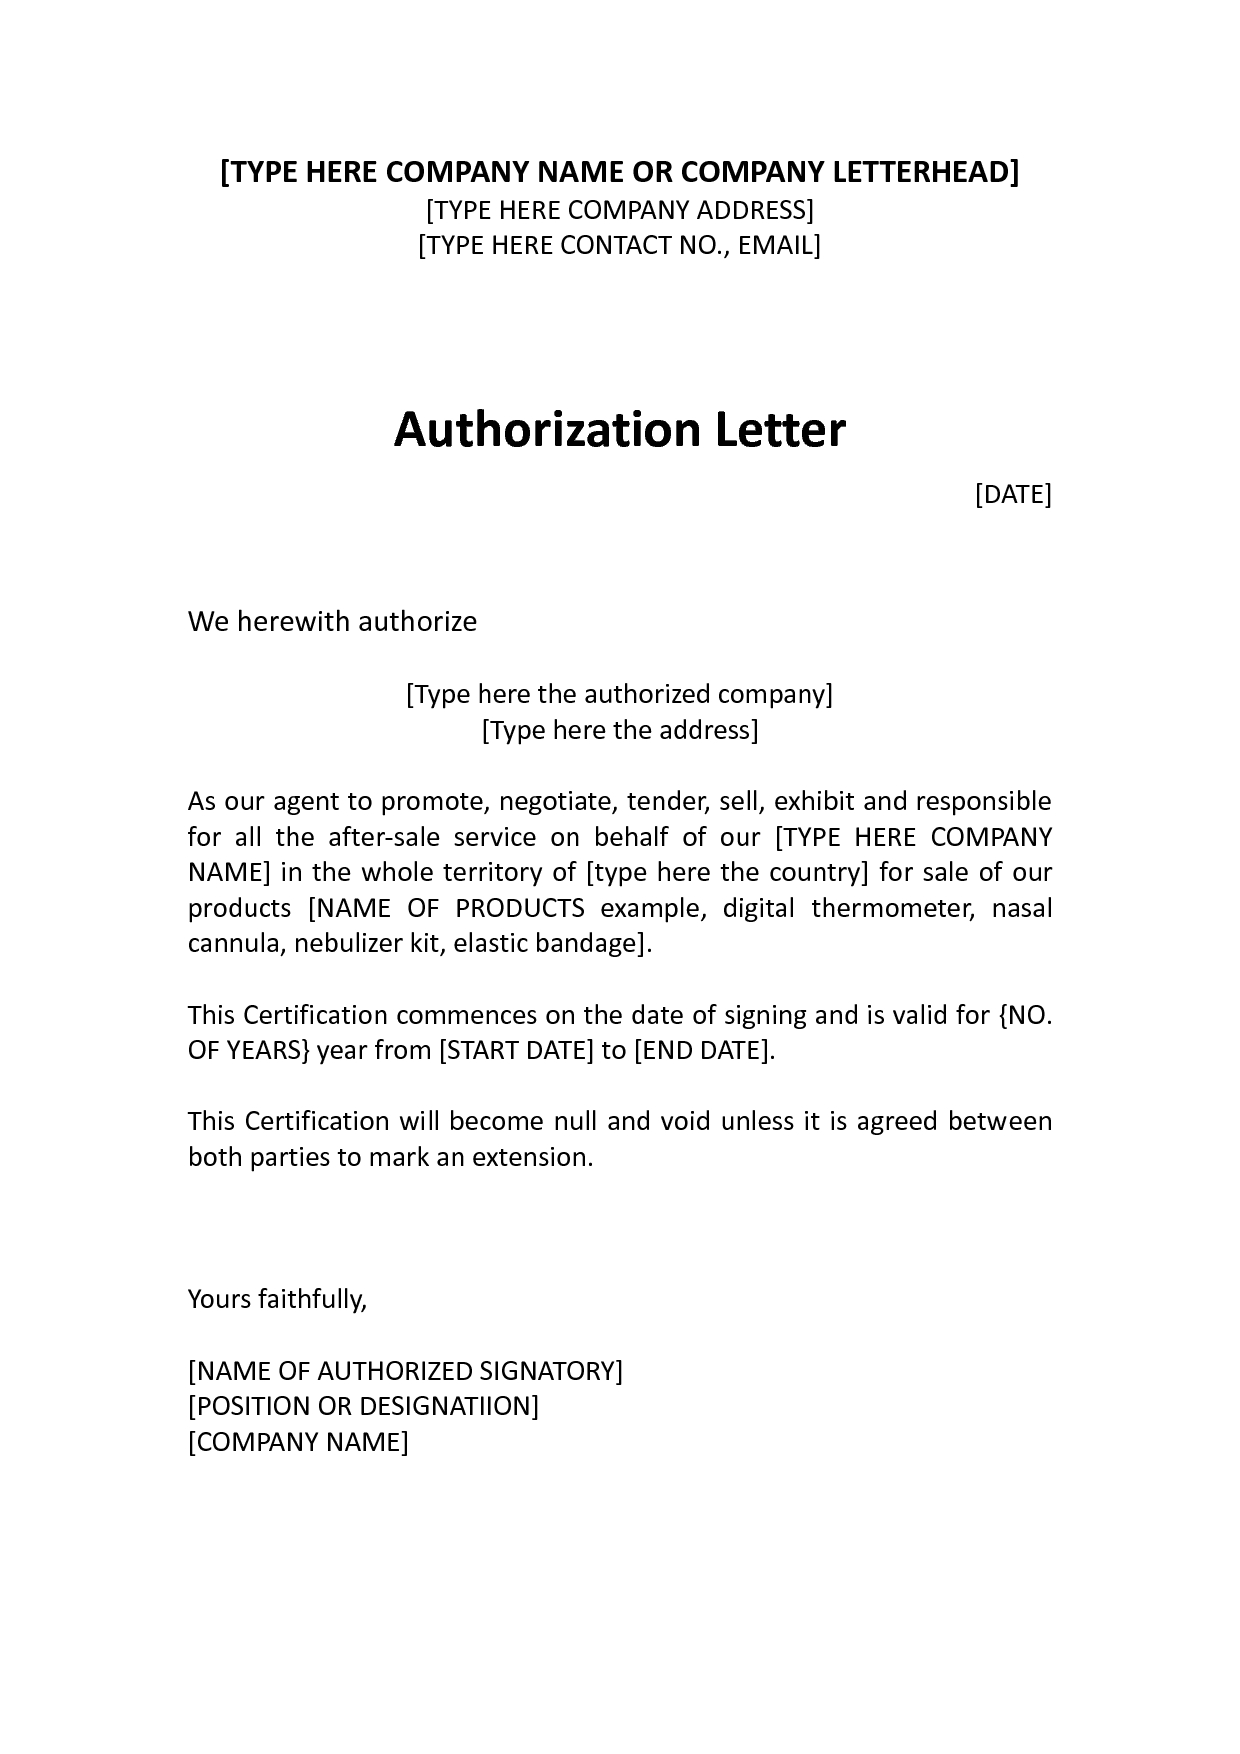 Parental Consent Letter Template Collection | Letter Cover Templates